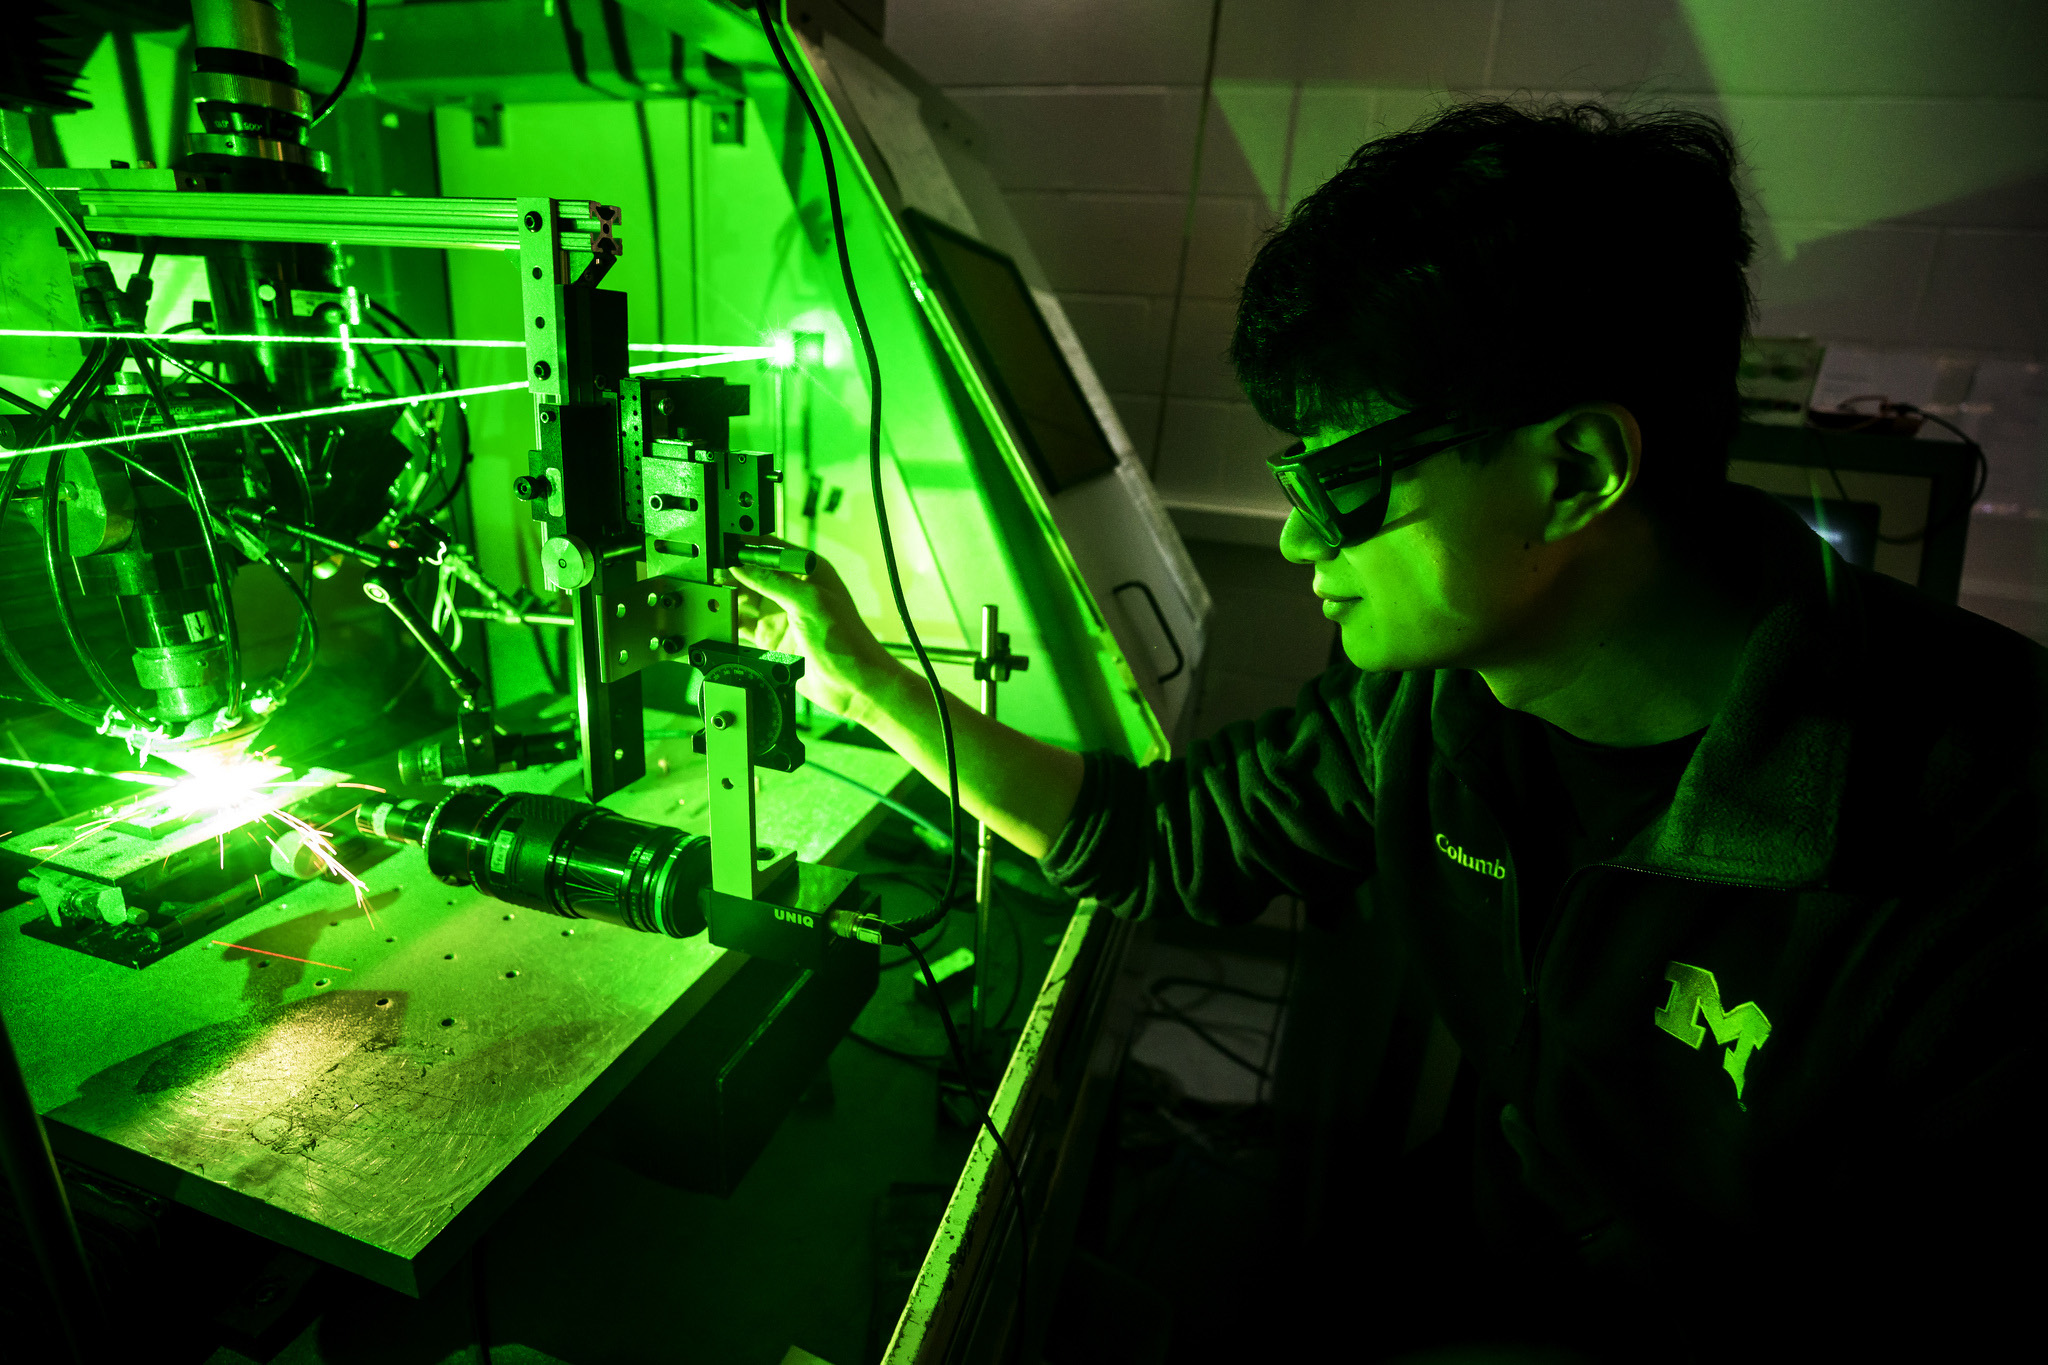 A photograph of graduate student in lab running a laser deposition system.